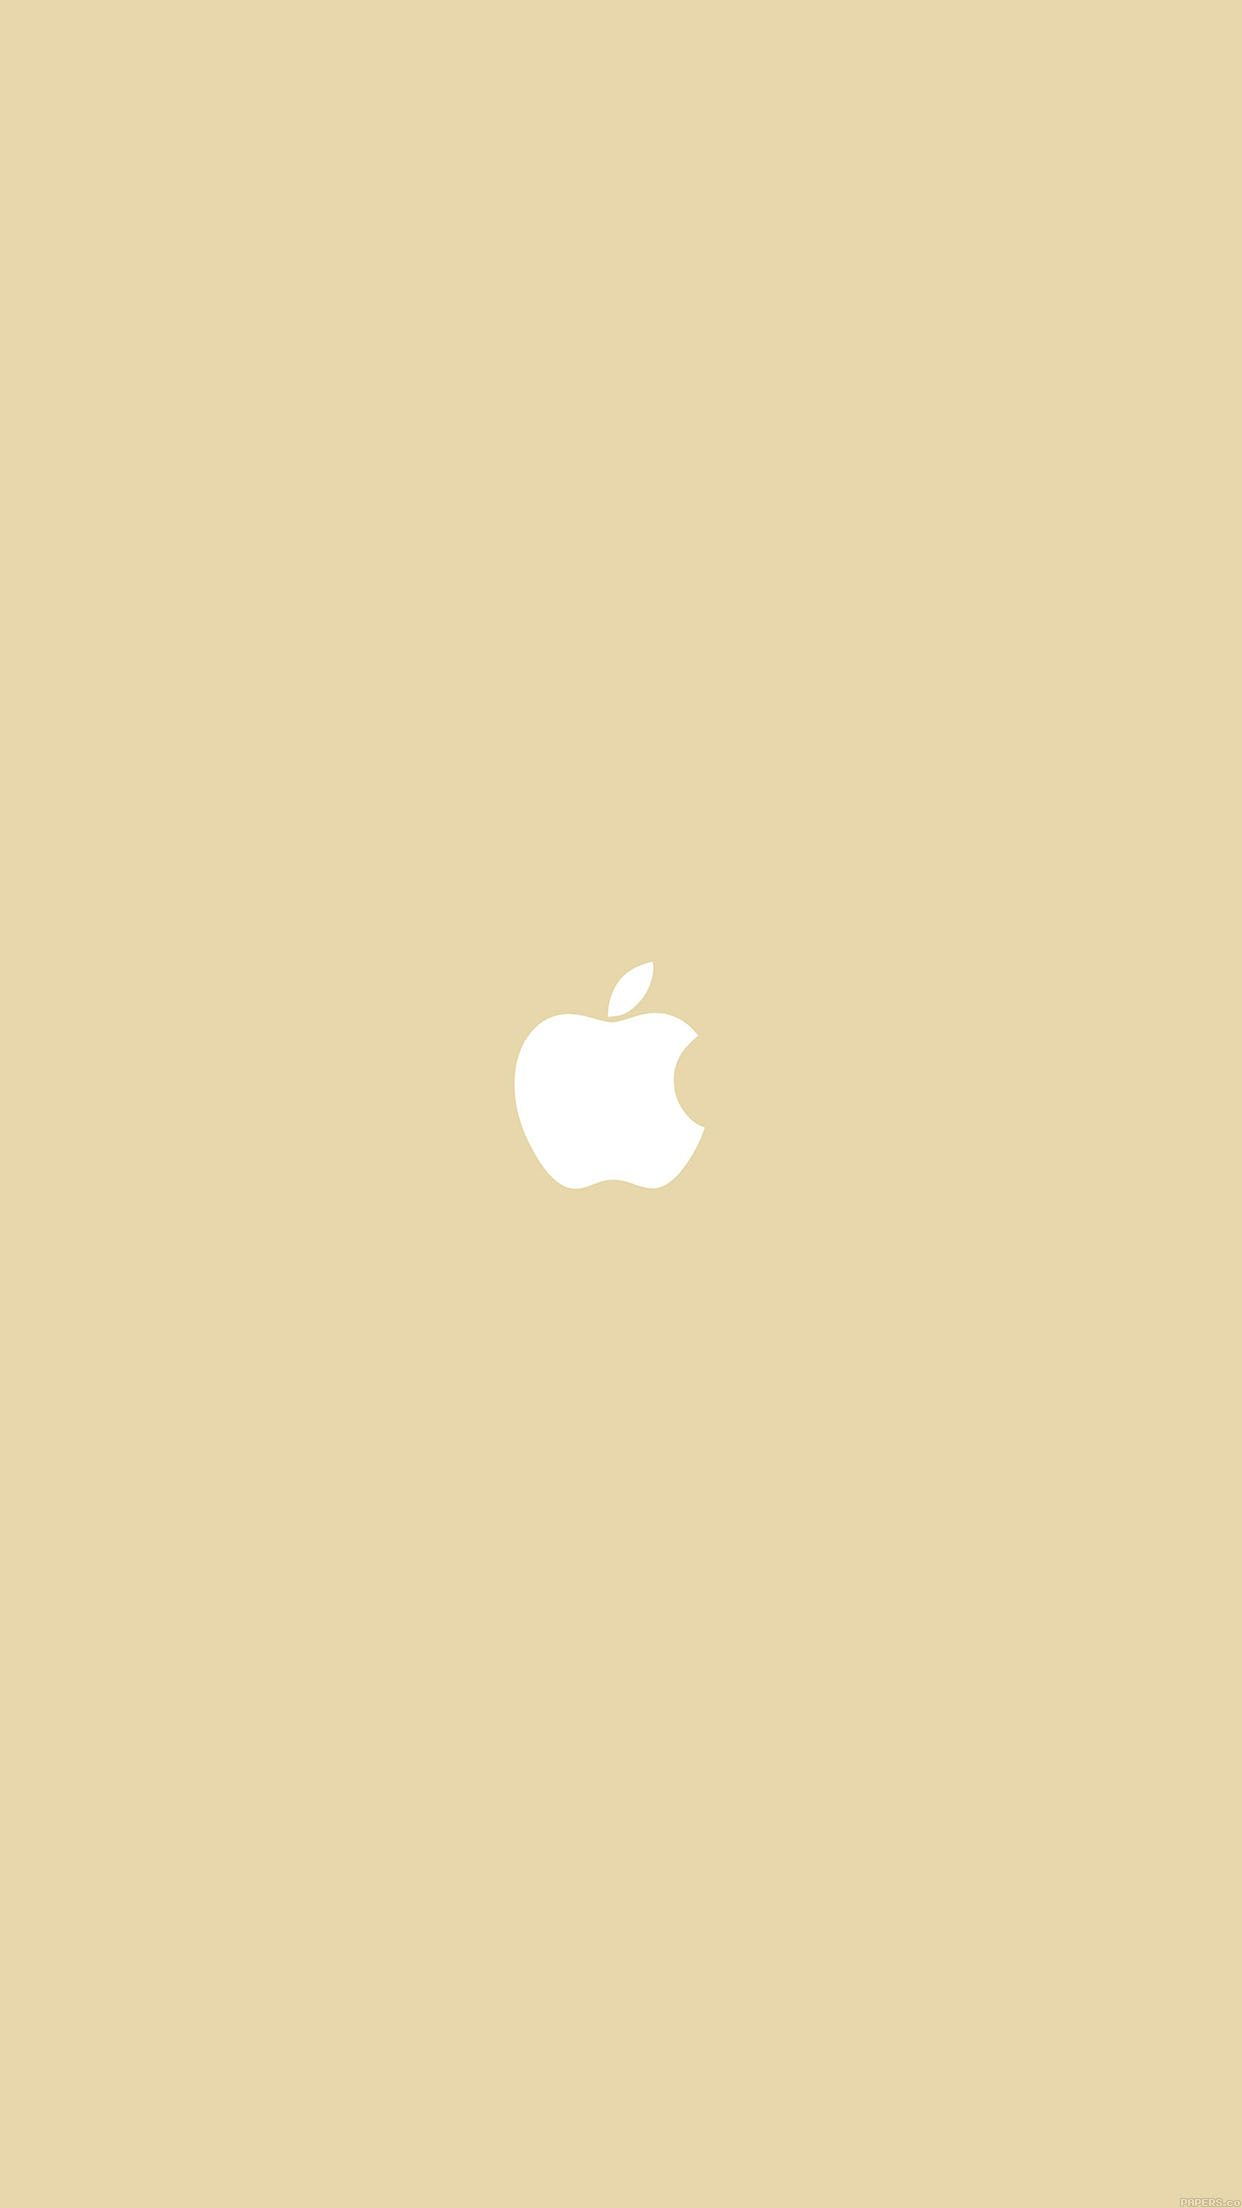 1242x2208 Simple Apple Logo Gold Minimal Android wallpaper - Android ...